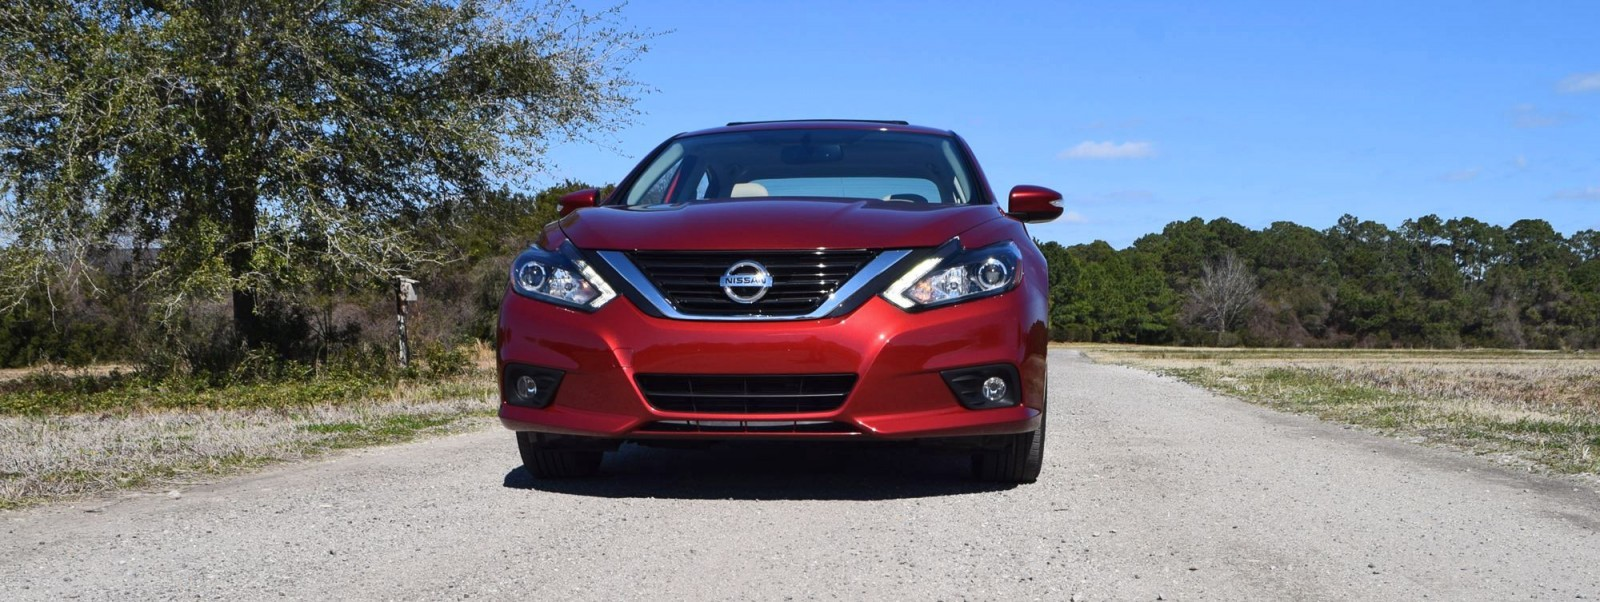 Elegant Road Test Review  2016 Nissan Altima SL  Fresh Face For